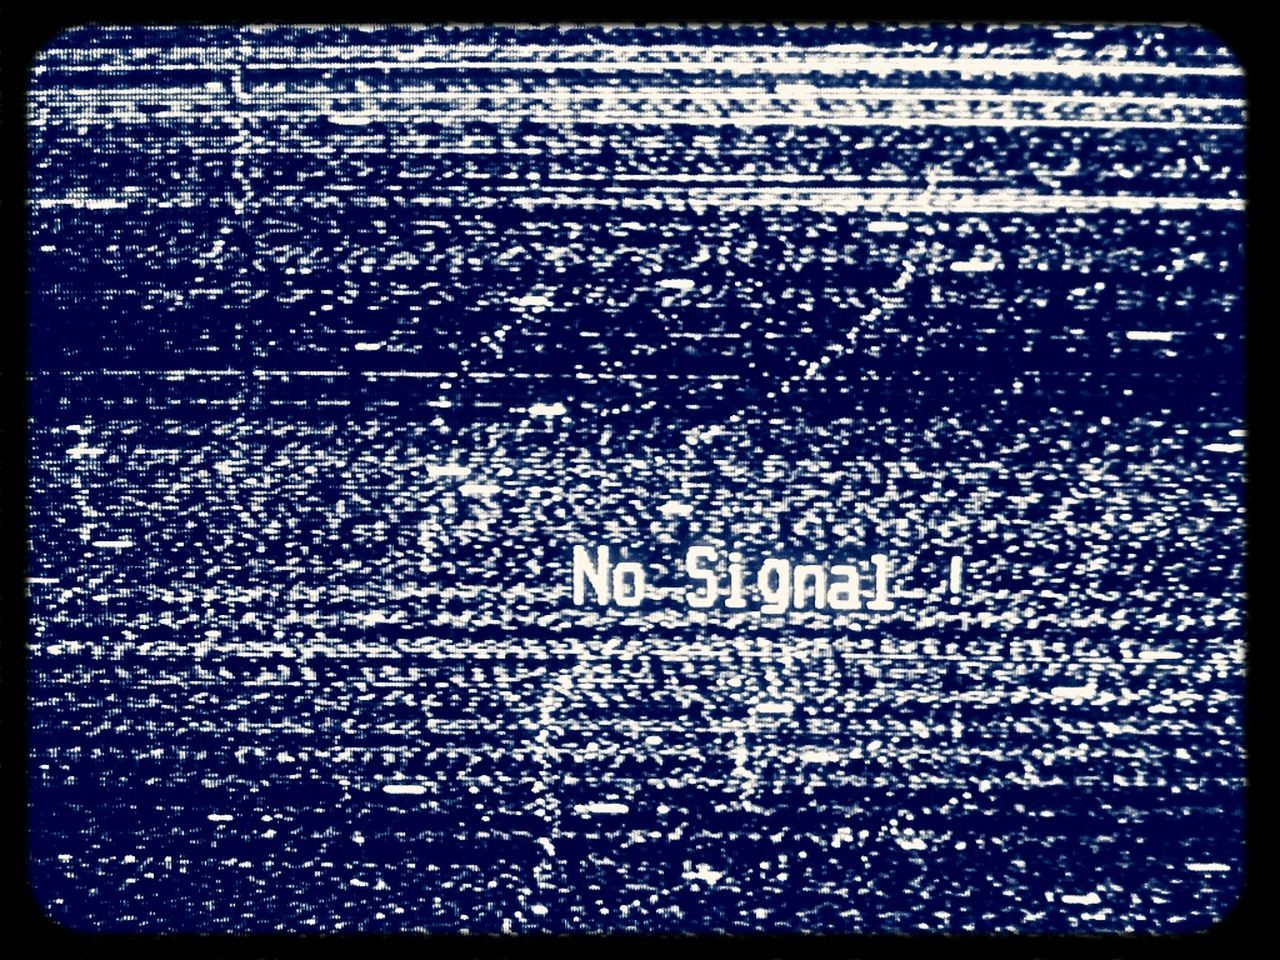 No Signal ! No Signal No Network Television White Noise